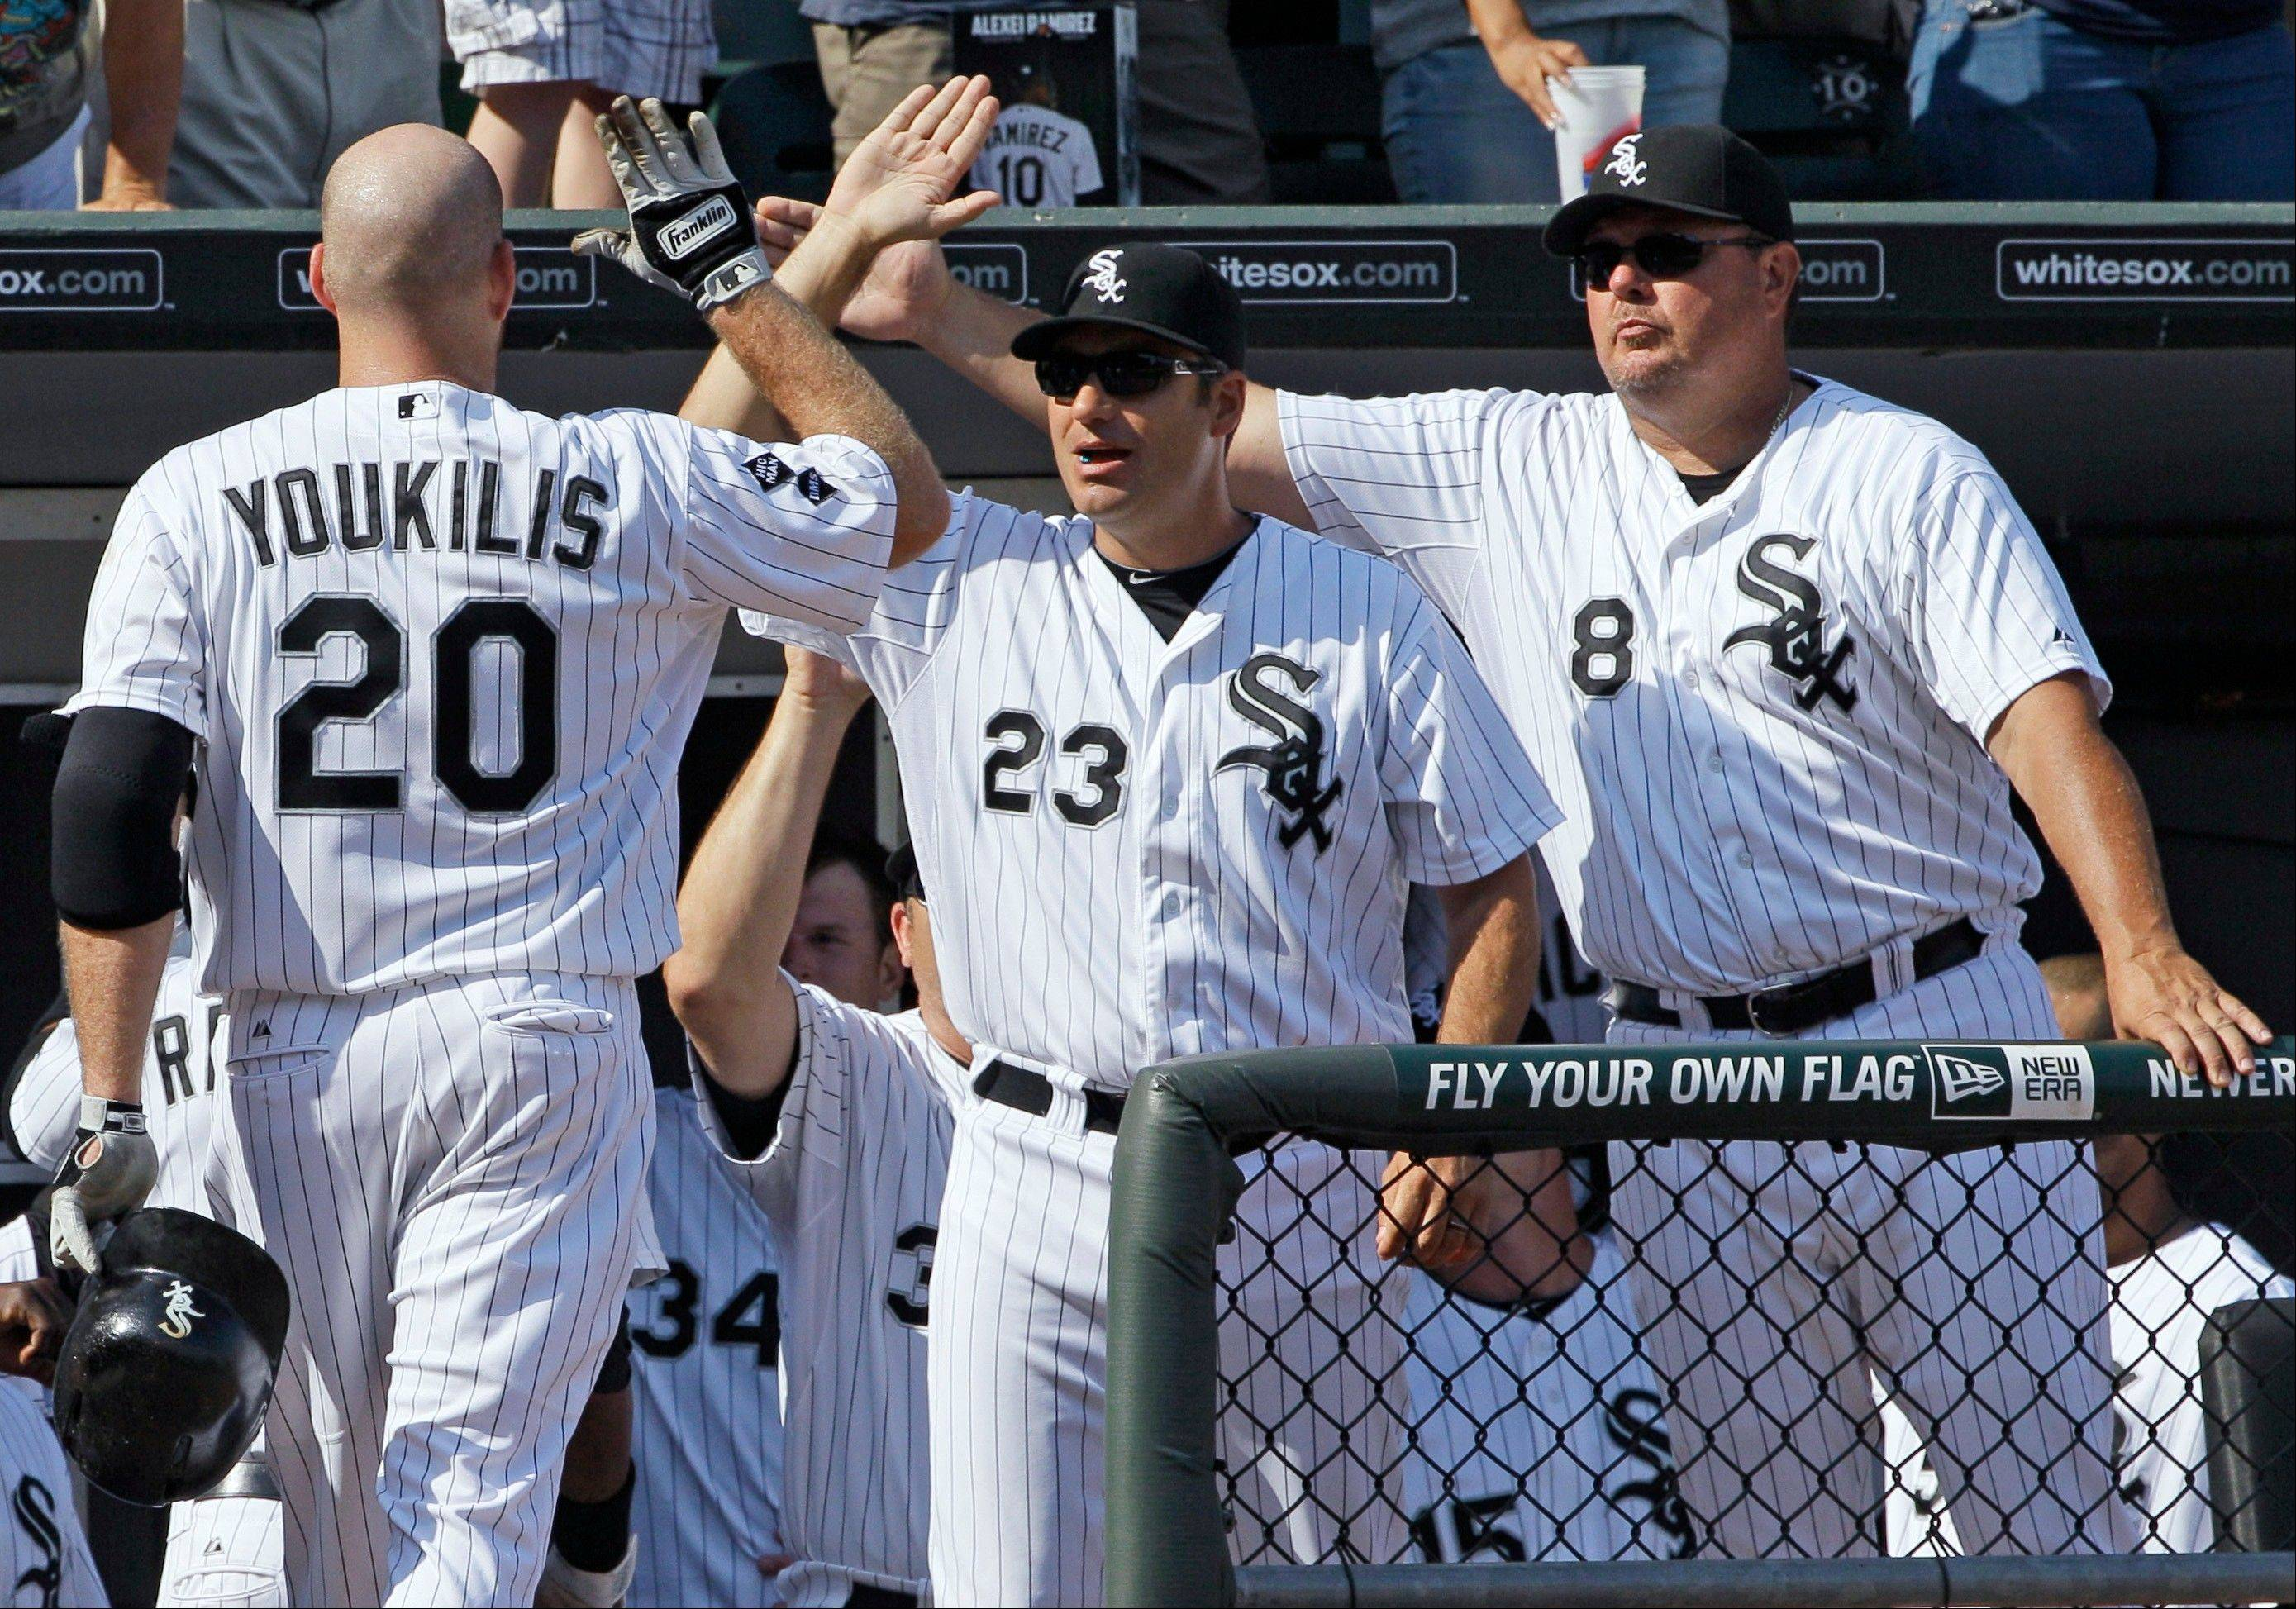 White Sox third baseman Kevin Youkilis, left, celebrates Saturday with manager Robin Ventura, center, and bench coach Mark Parent after hitting a two-run home run during the fifth inning against the Toronto Blue at U.S. Cellular Field.